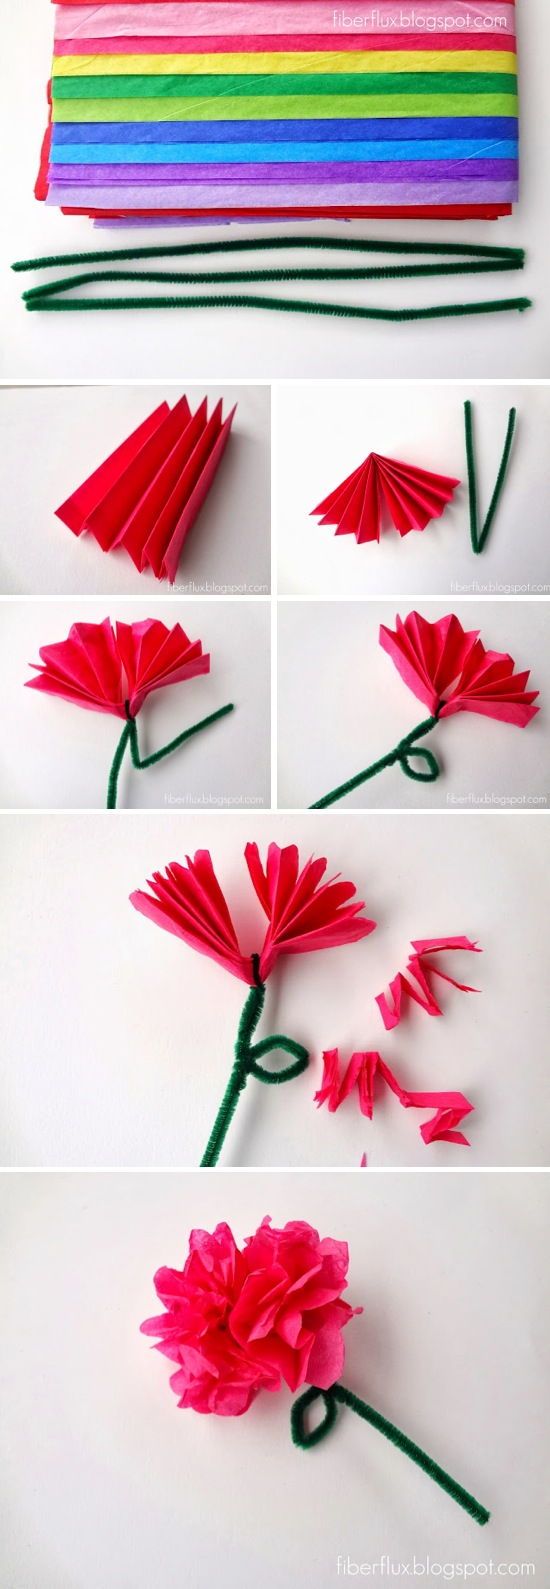 Tissue paper flowers instructions for kids